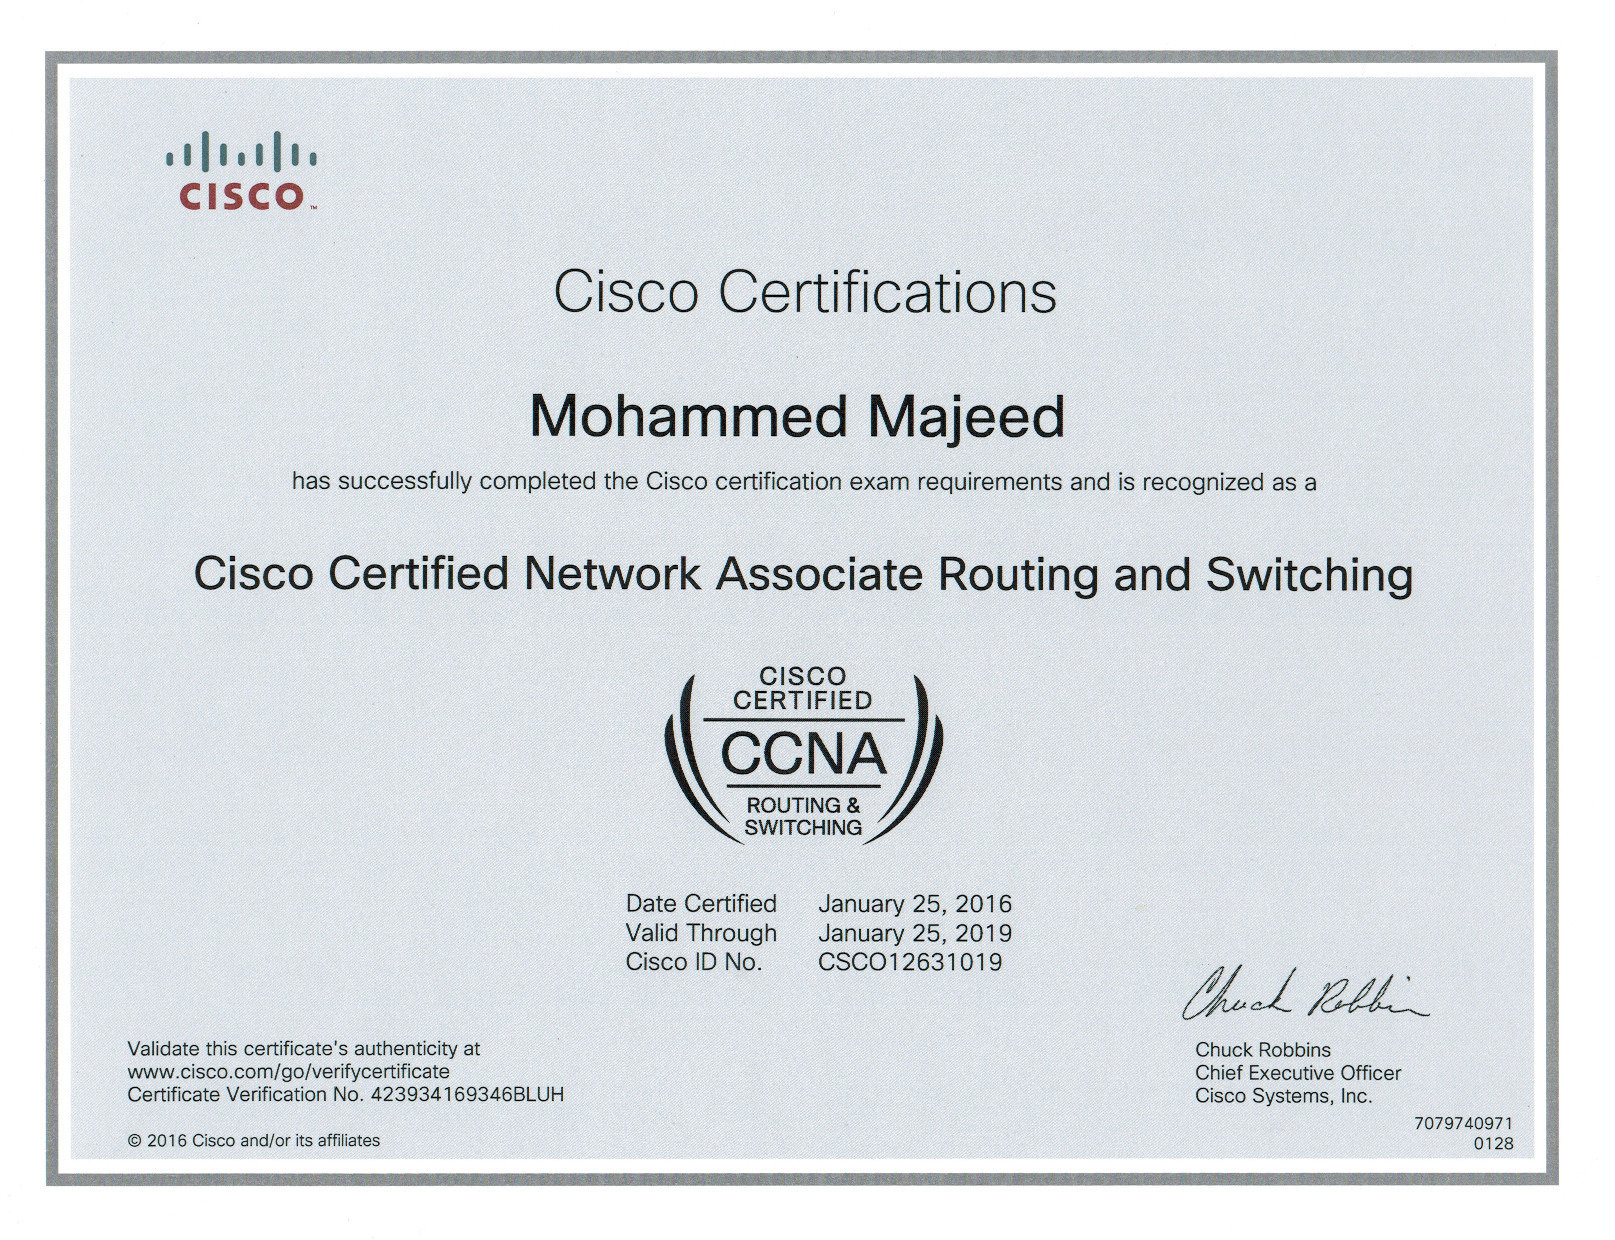 Mohammed majeed bayt ccna certificate 1betcityfo Gallery